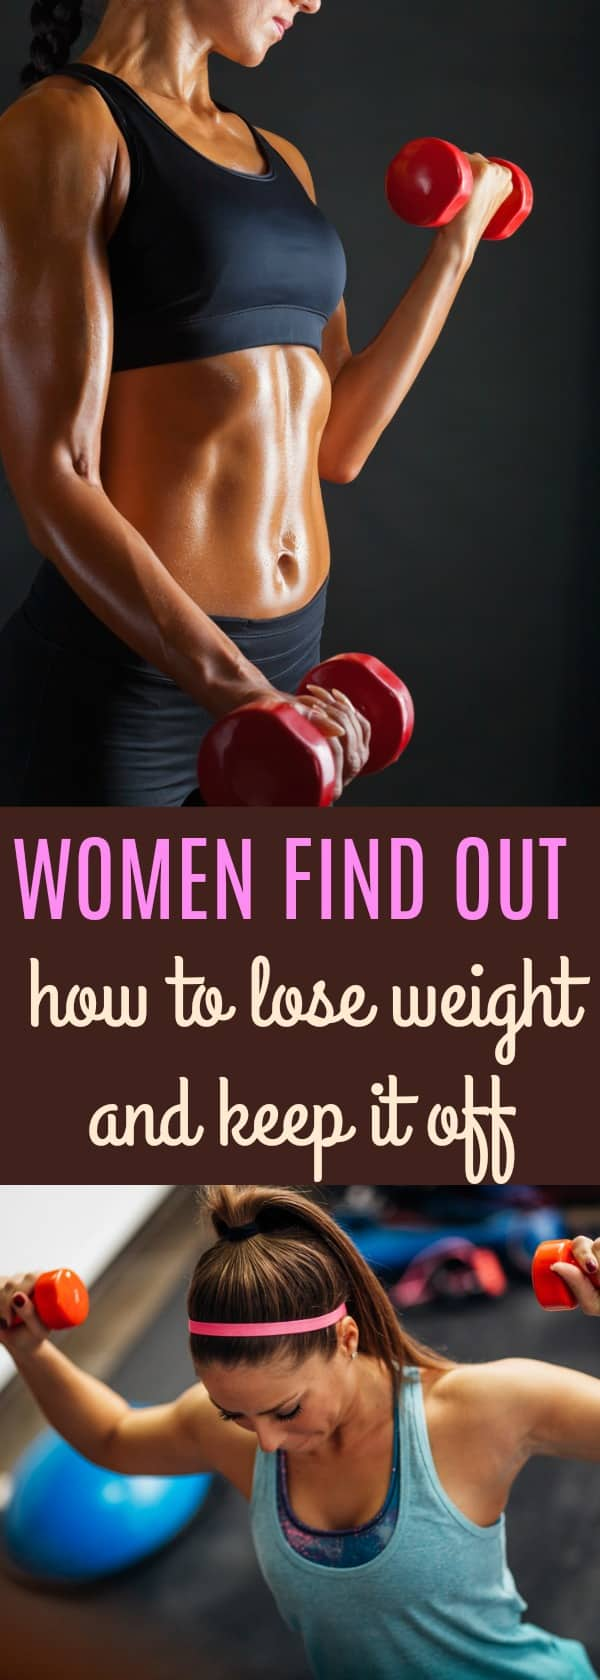 women lift weights